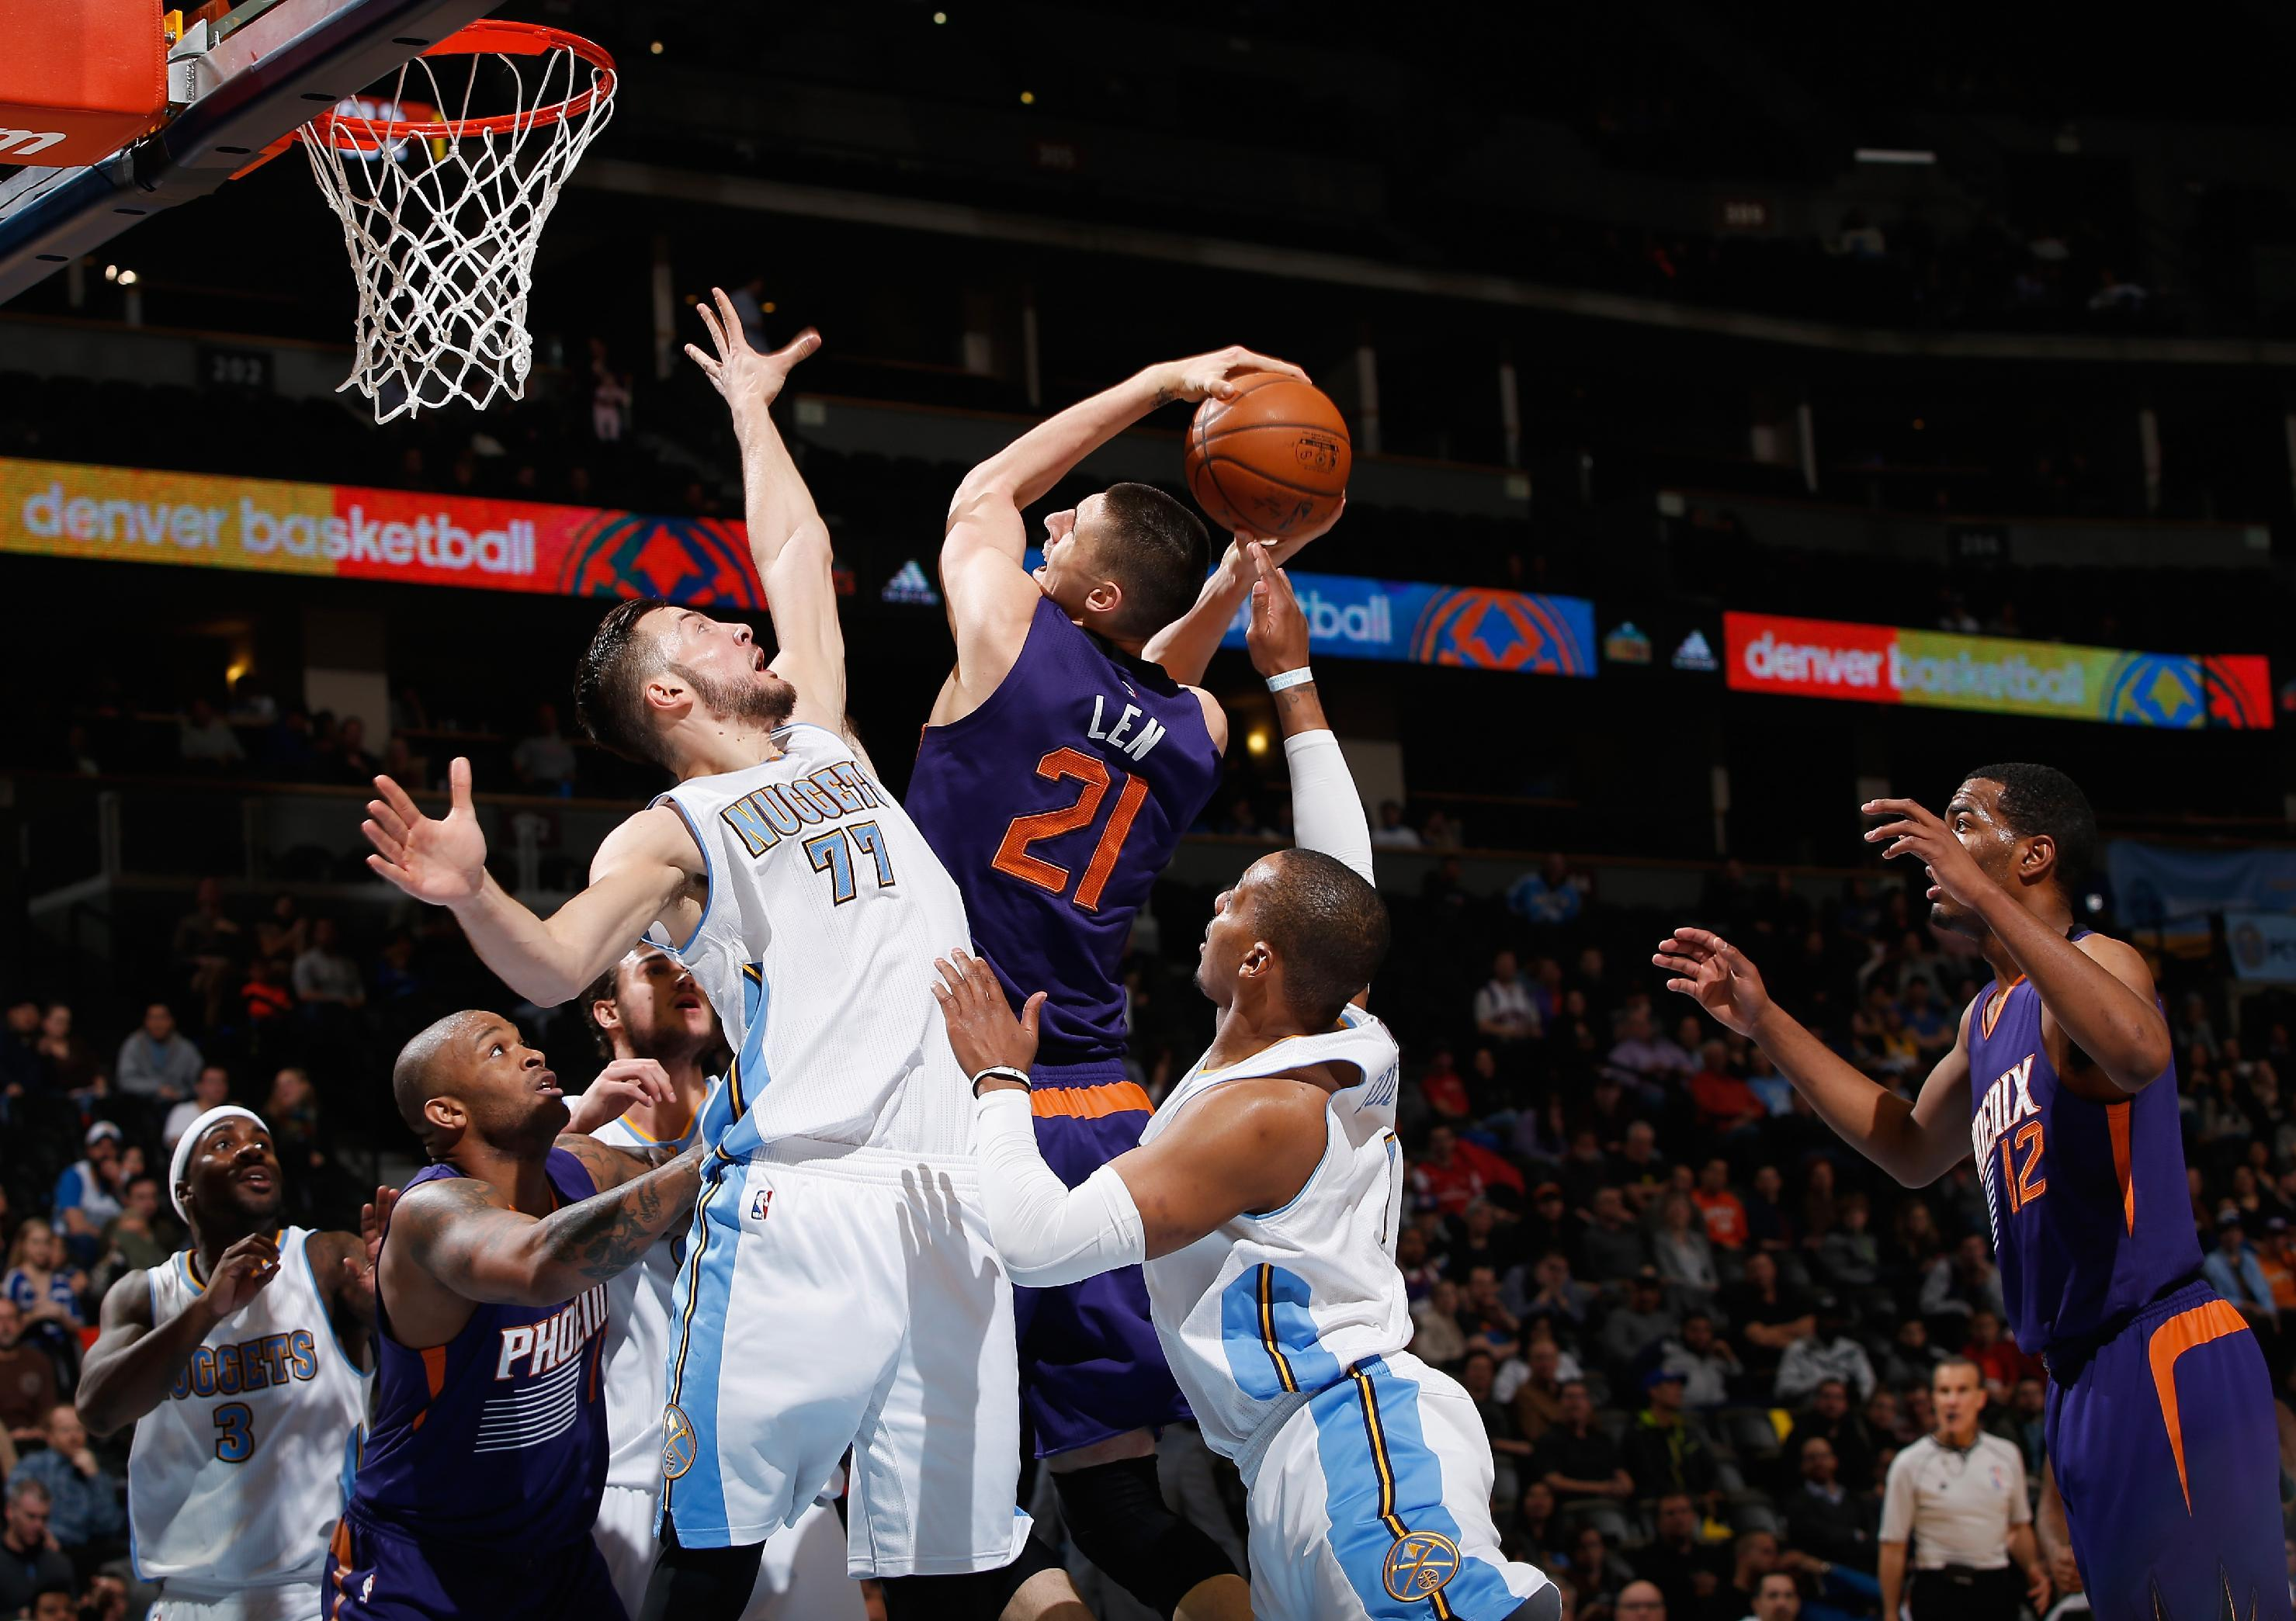 Suns end 5-game skid with 110-96 win over Nuggets